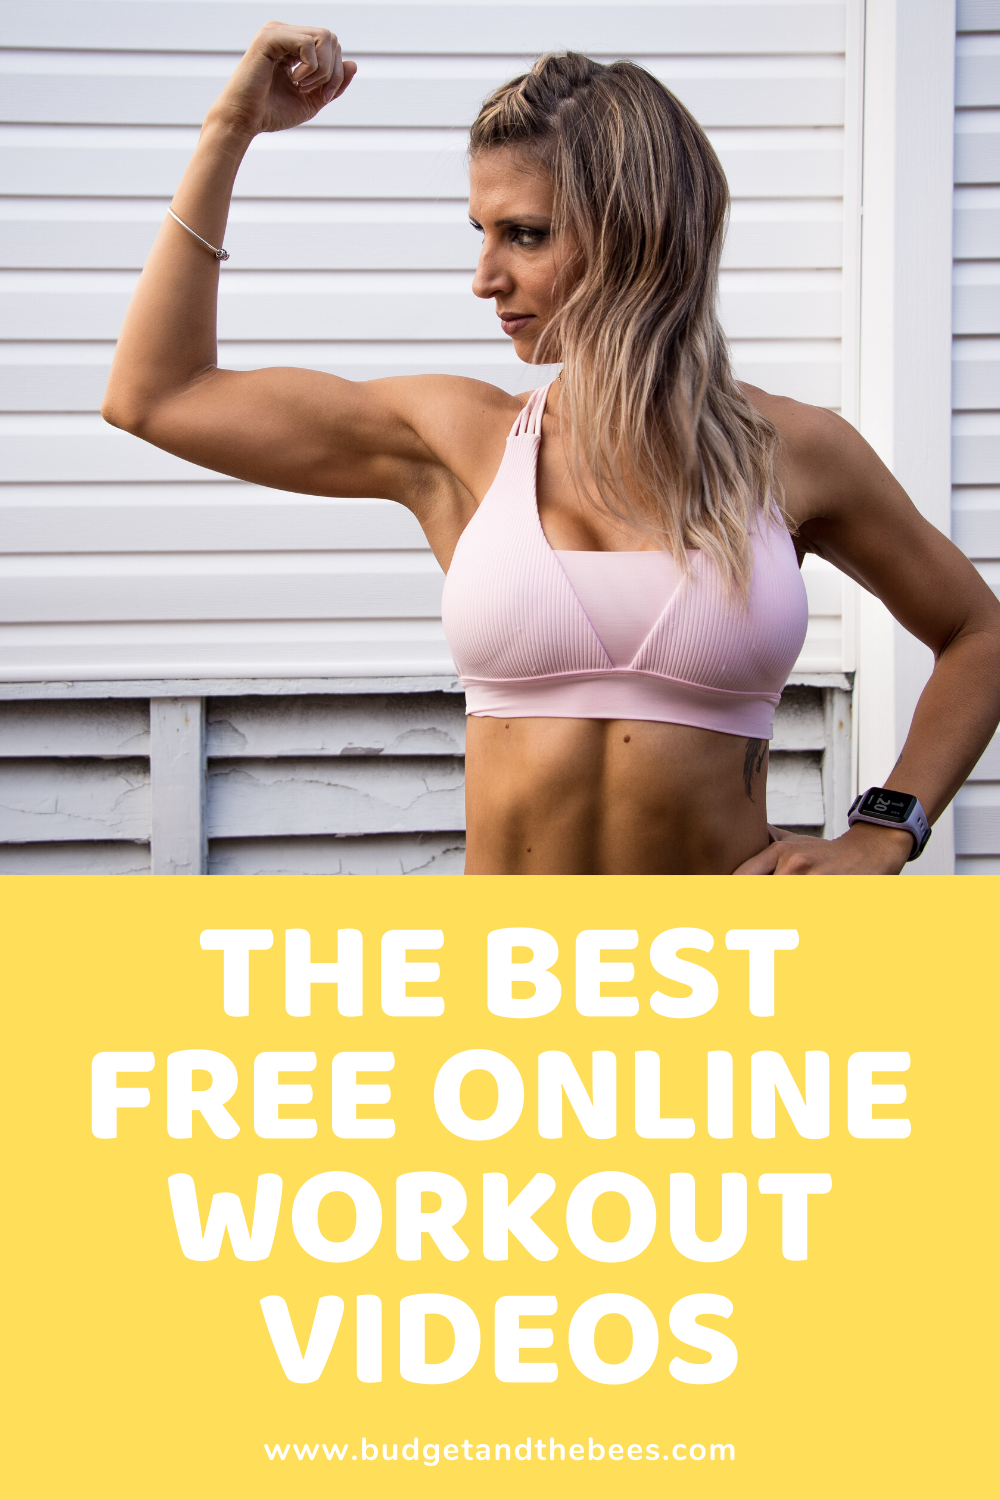 where i weight loss online